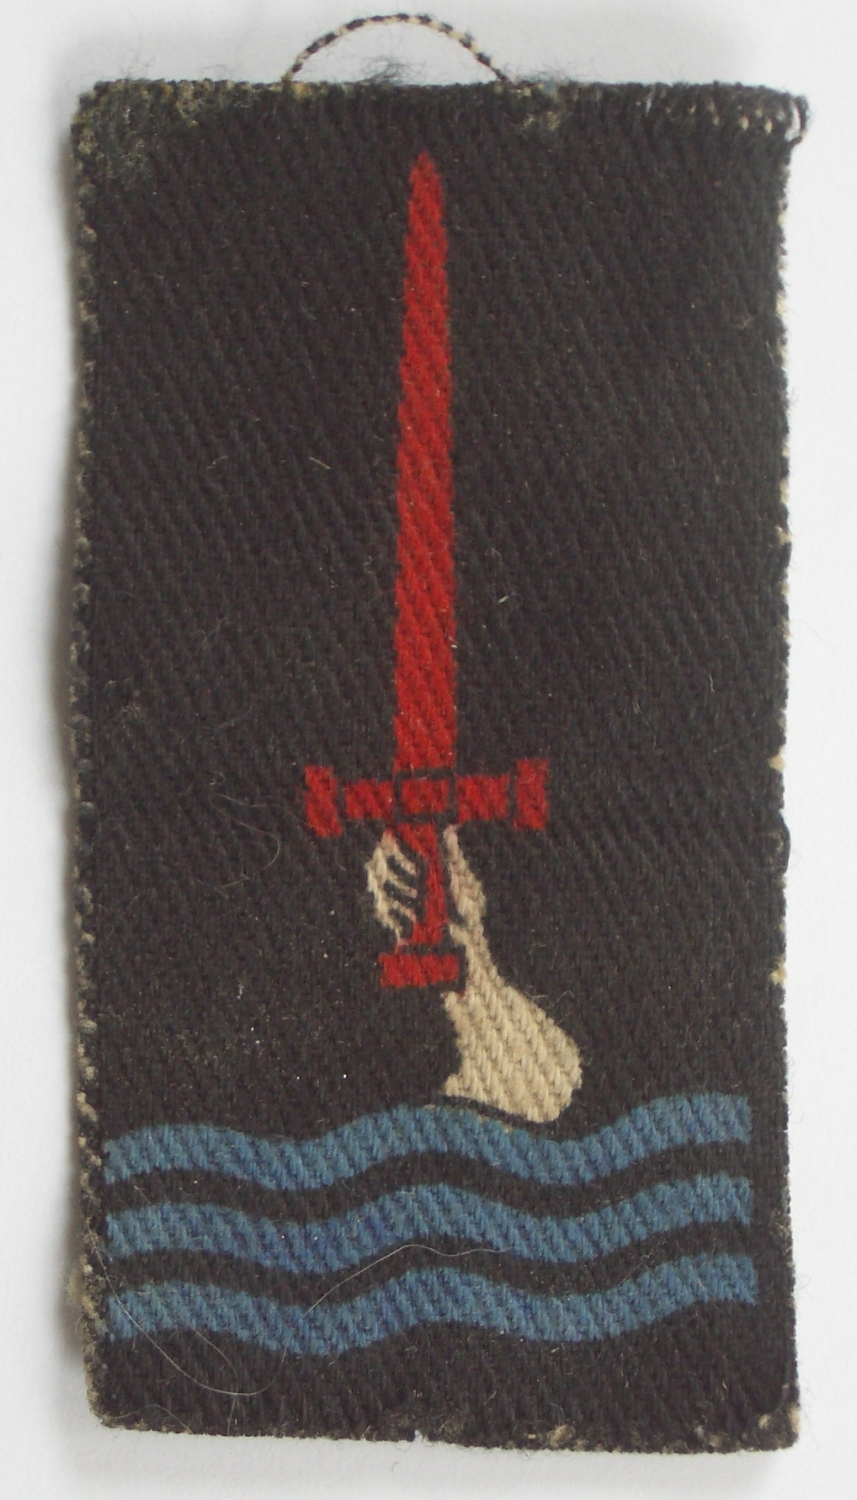 77th Infantry Division WW2 formation sign